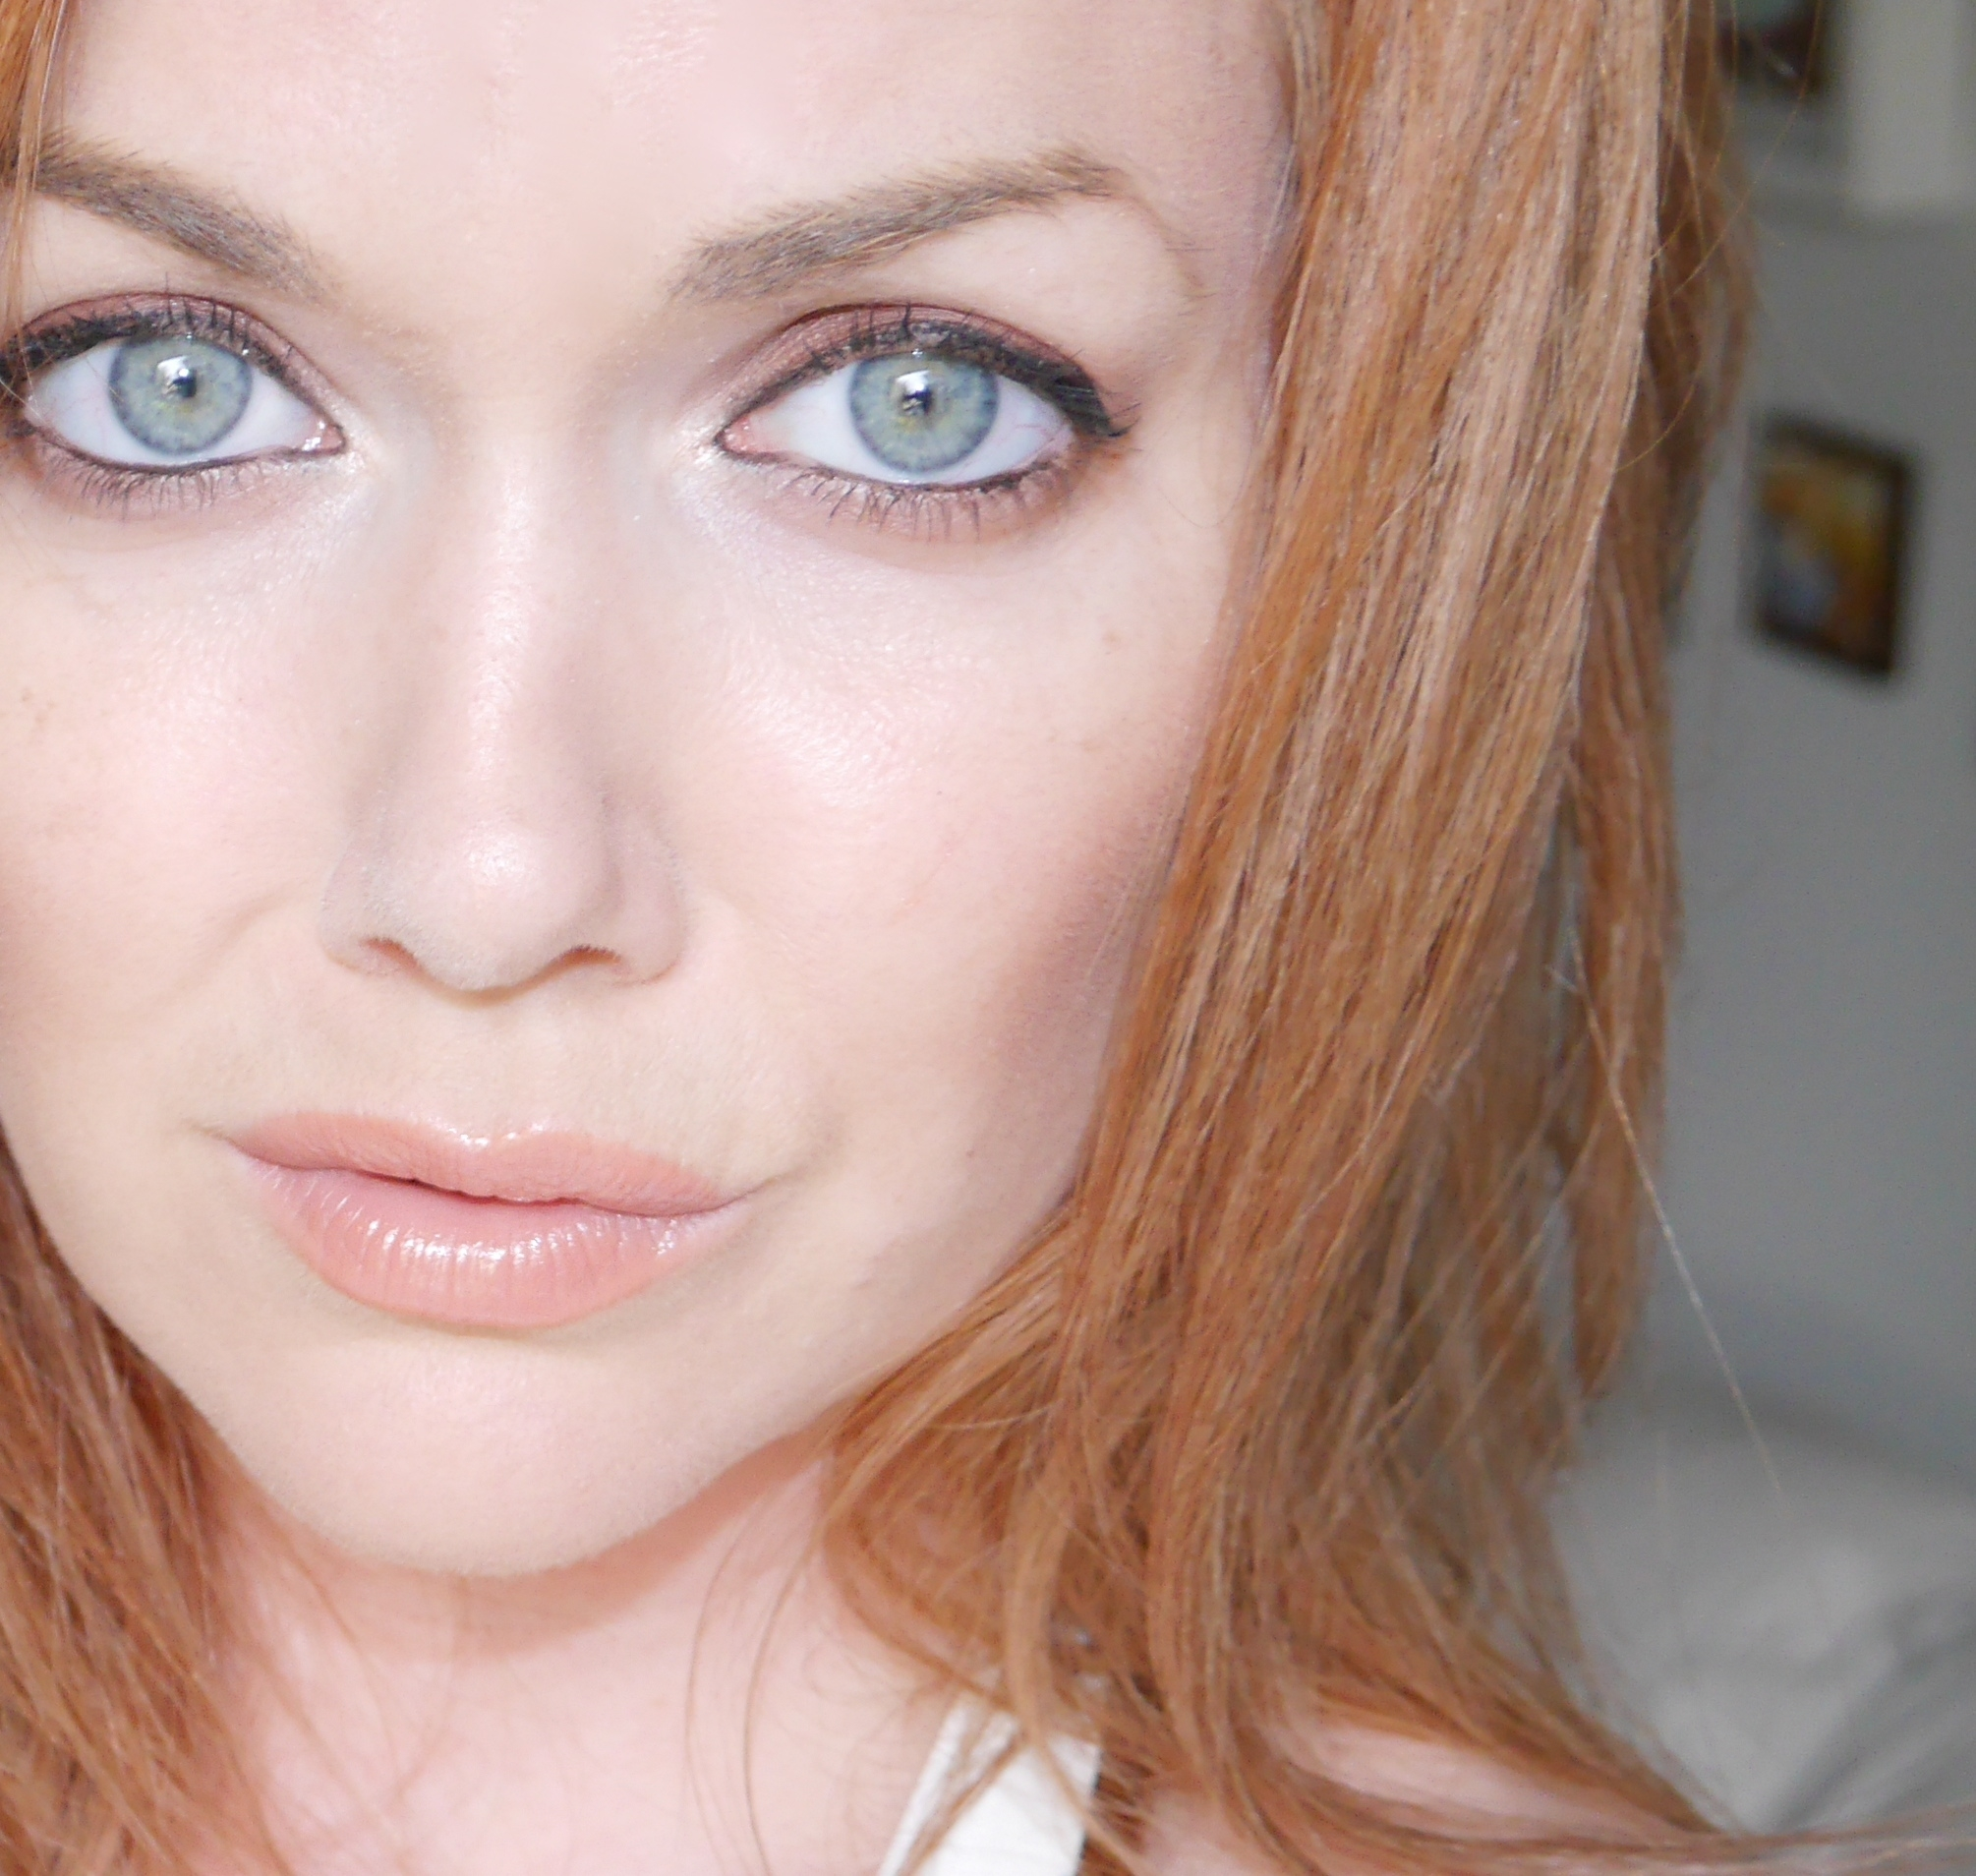 makeup tips for green eyes and strawberry blonde hair - wavy